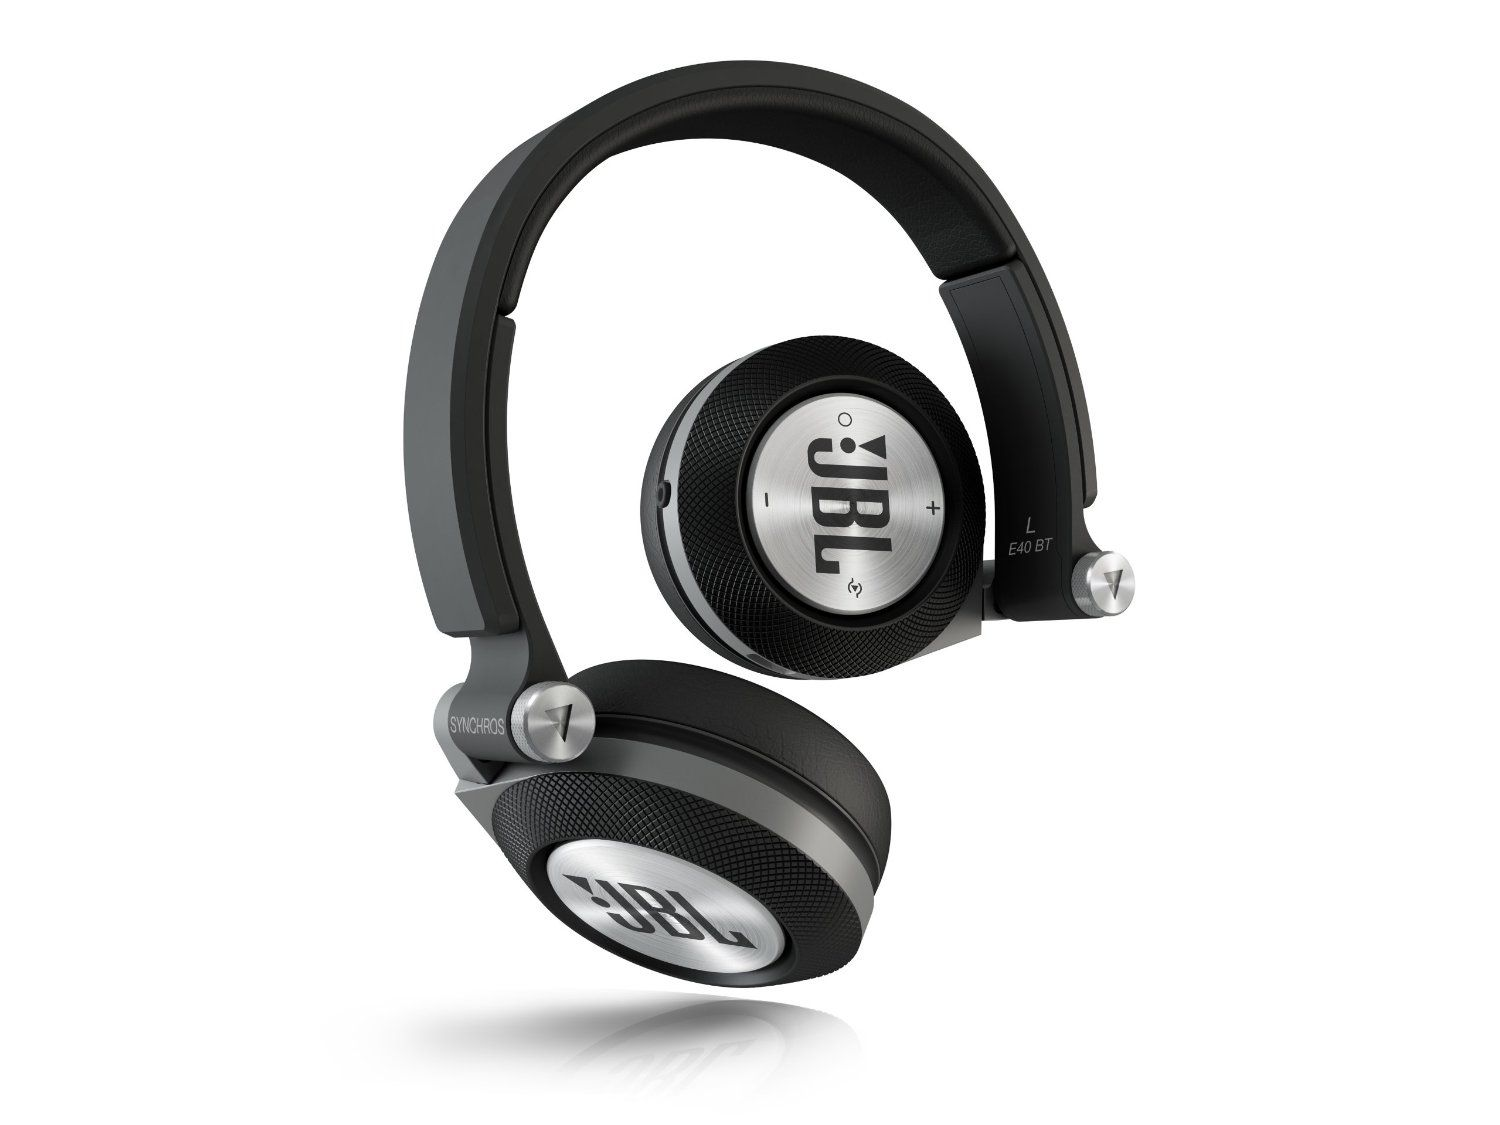 Buy Jbl Synchros E40bt Black Color Online At Low Prices In India Amazon In Headphones Stereo Headphones Headset